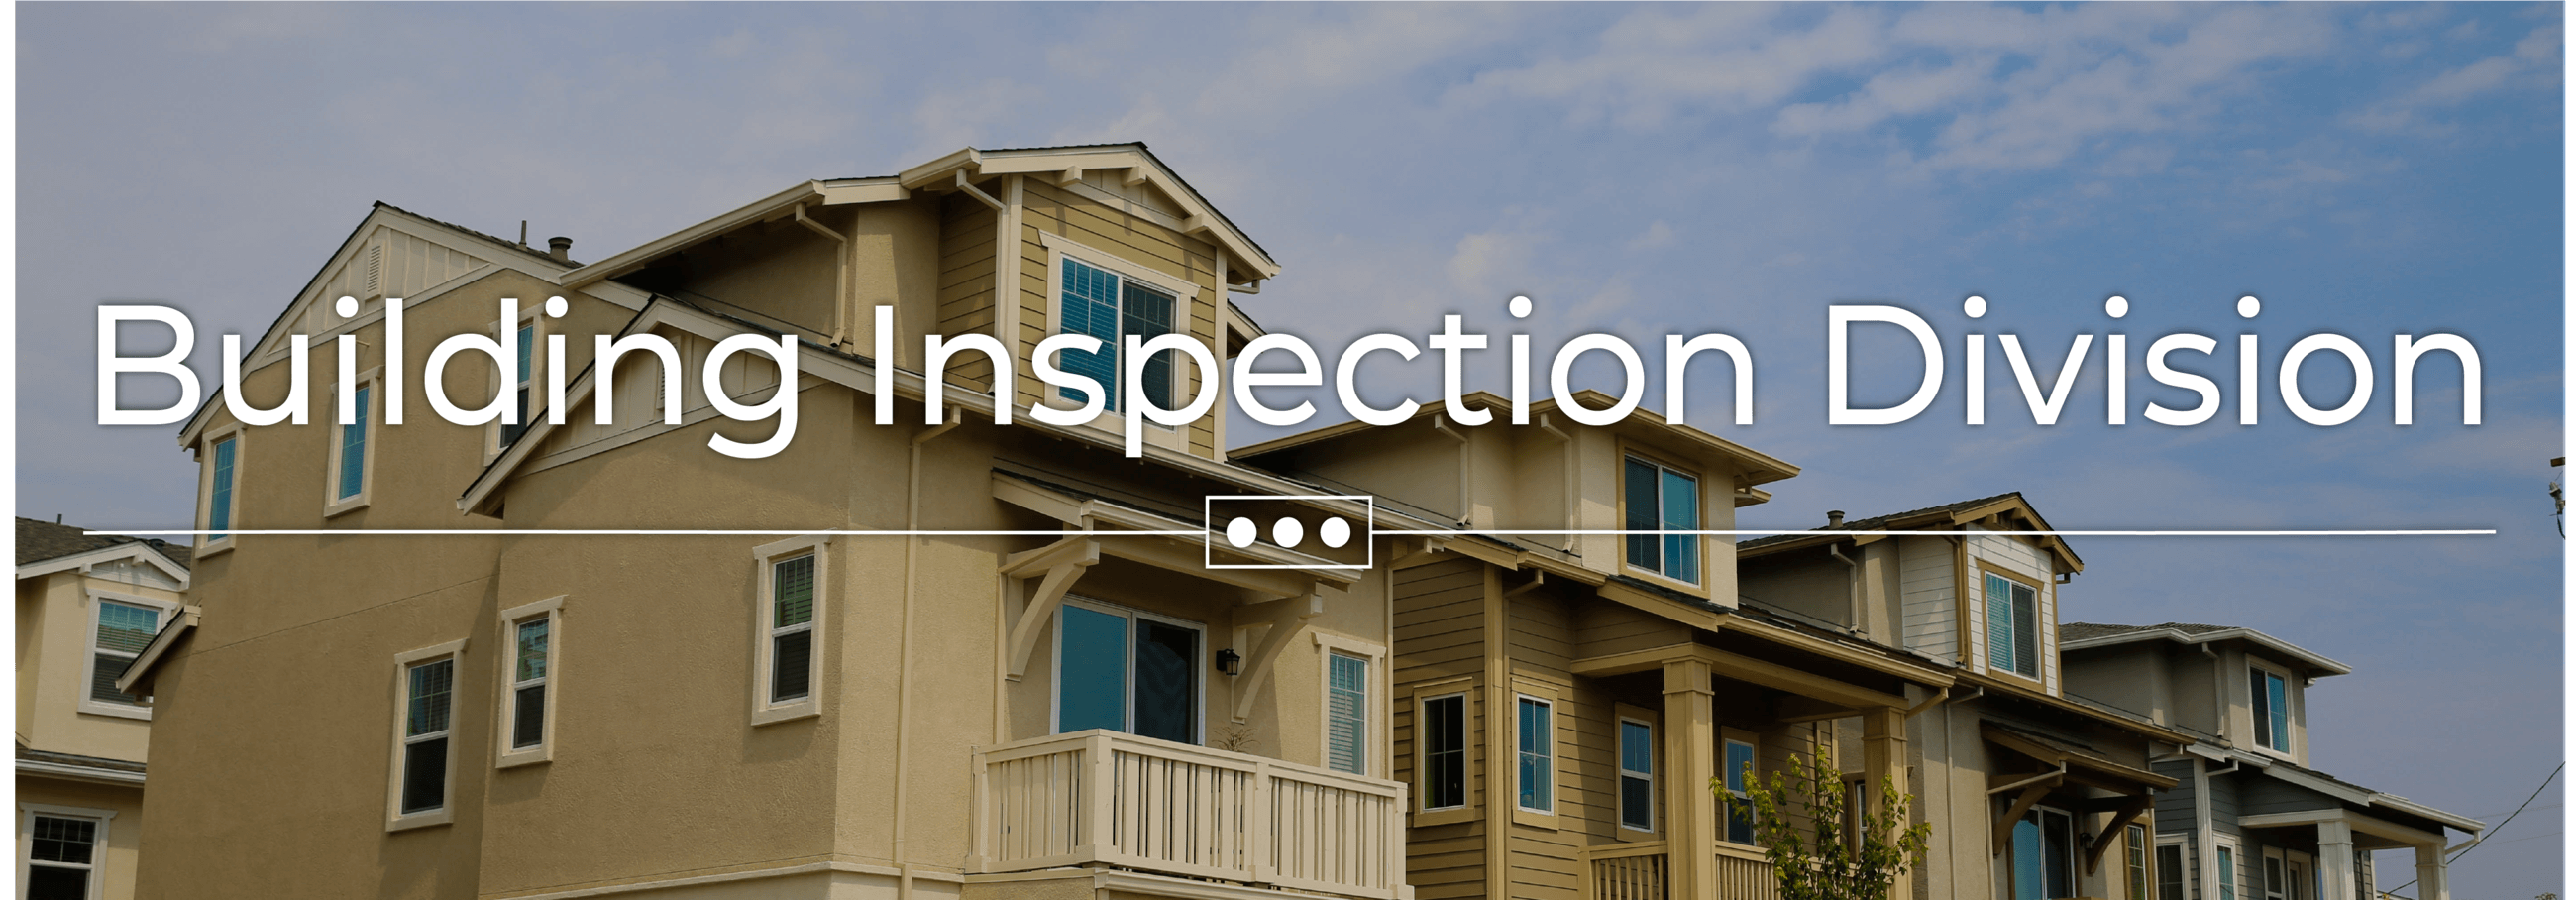 """Building Inspection Division"" text is on top of an image of homes"